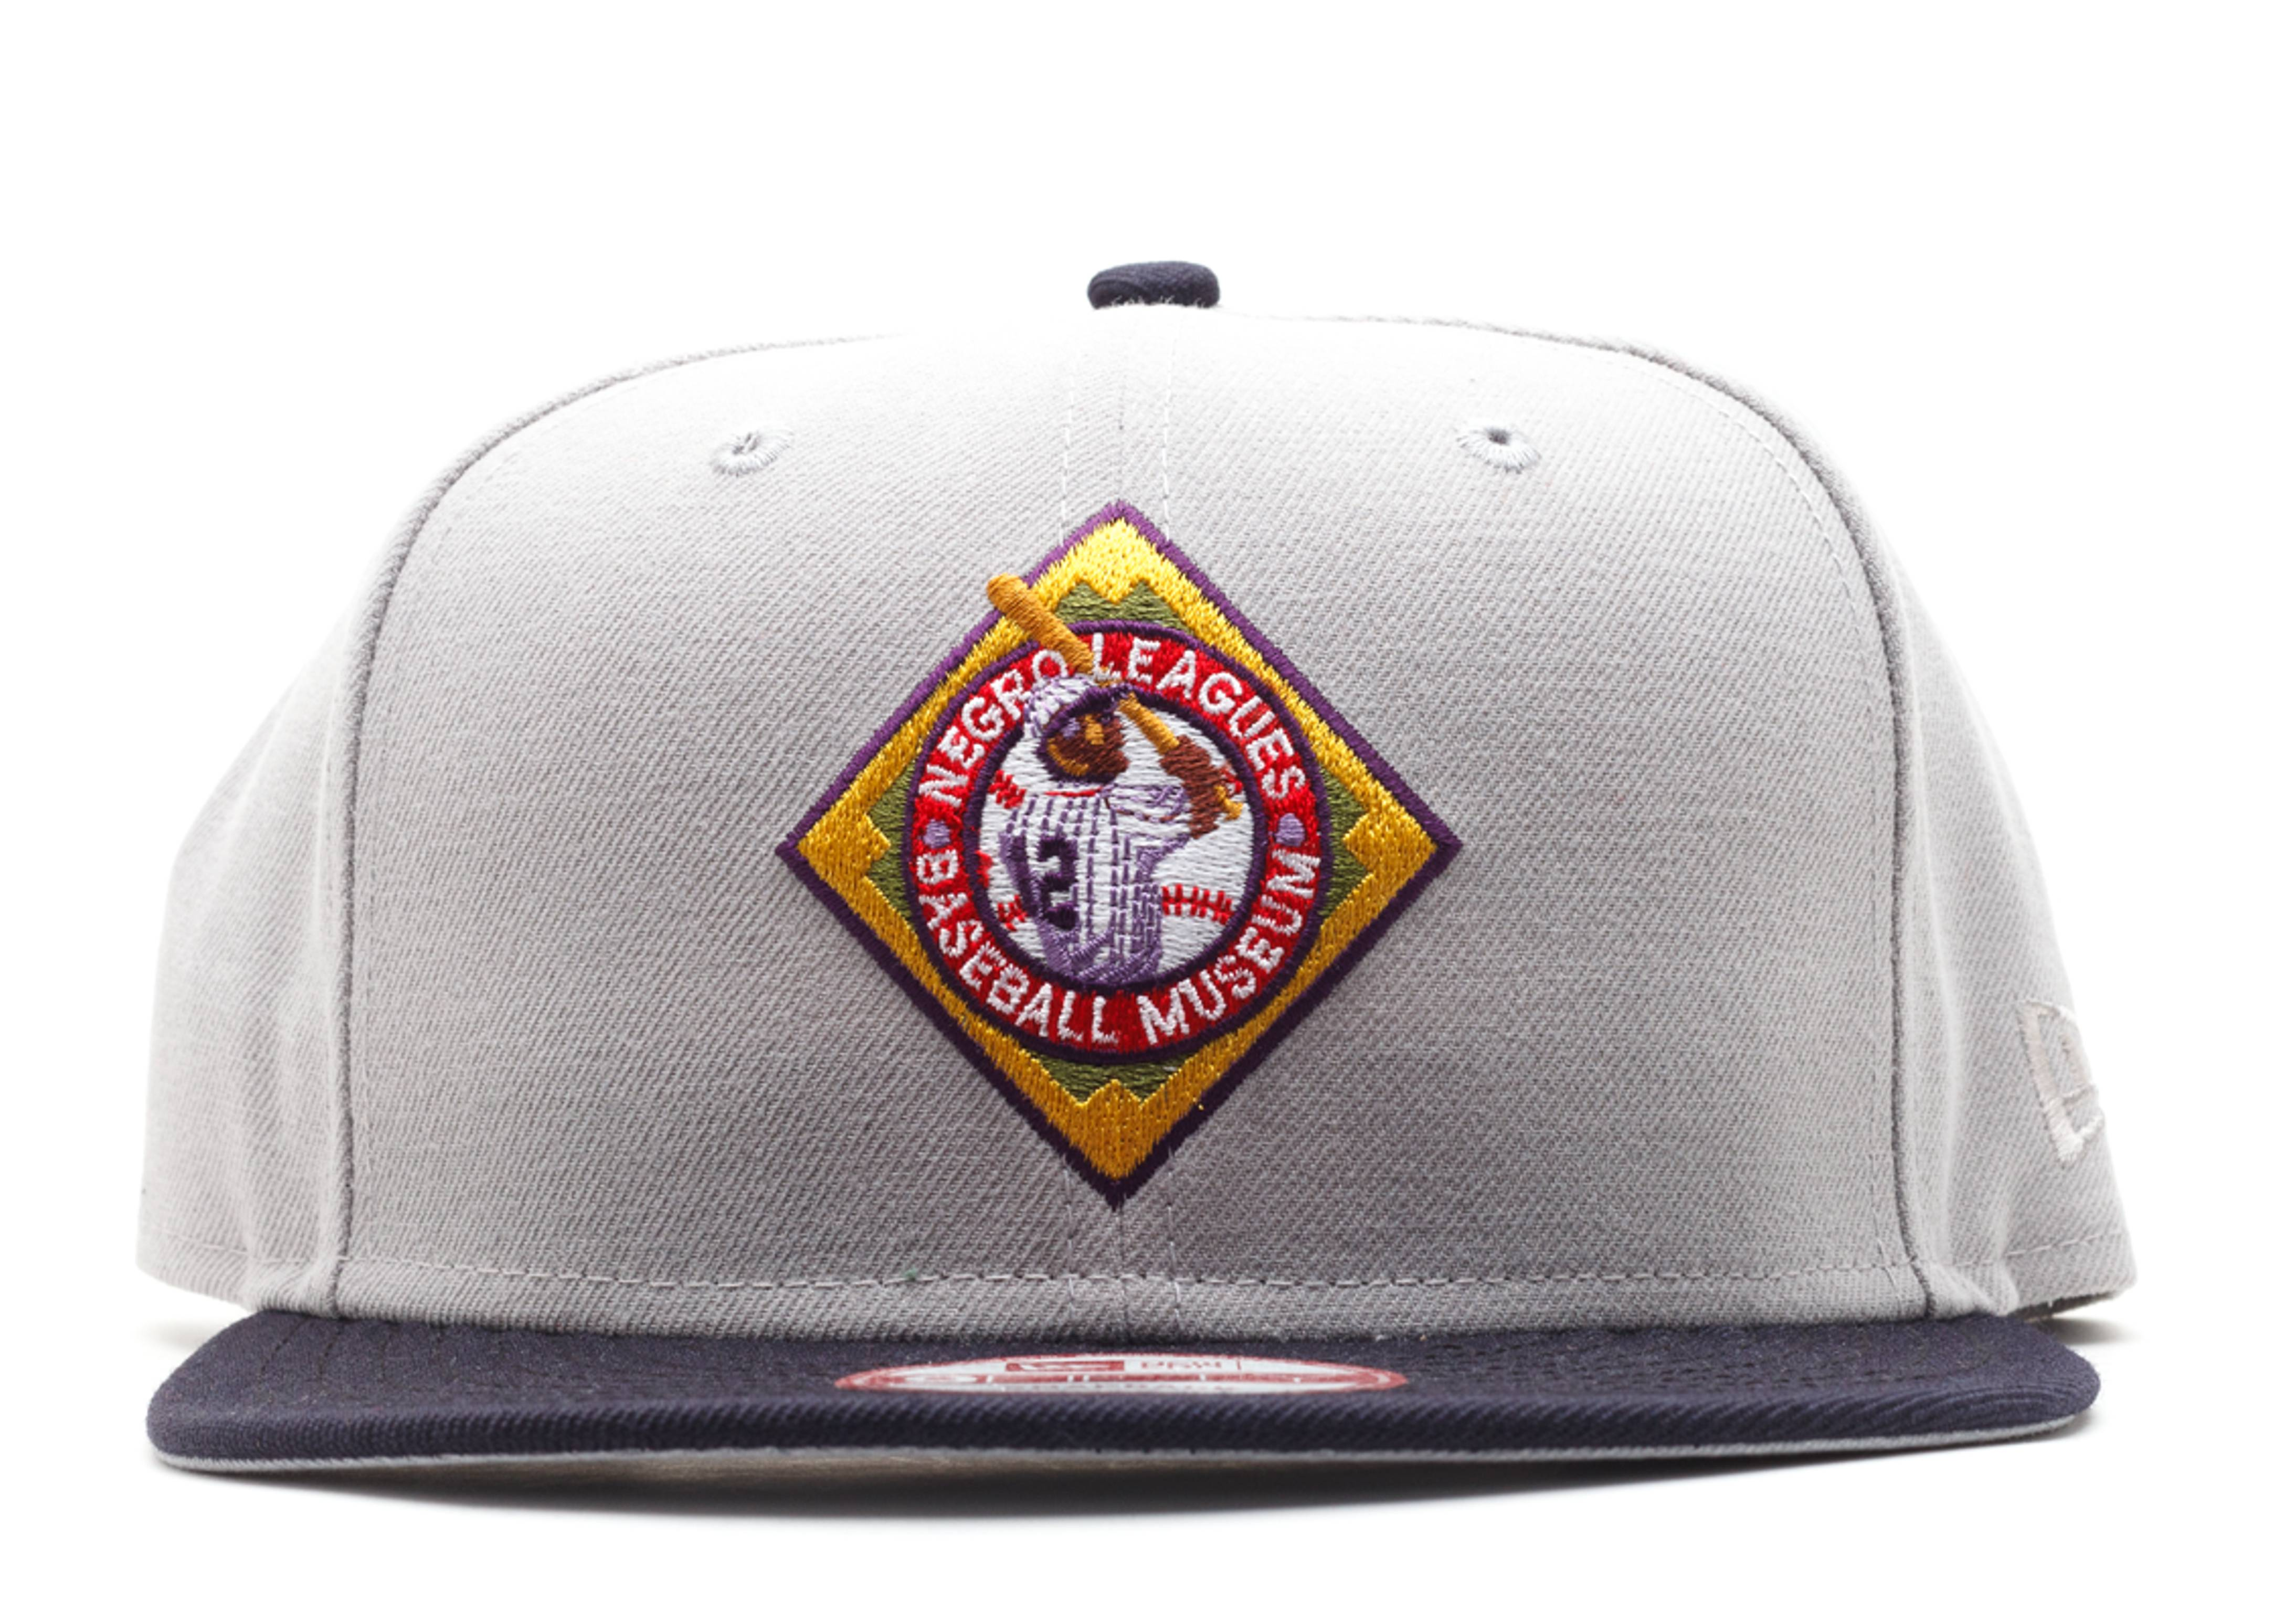 negro league baseball museum snap-back